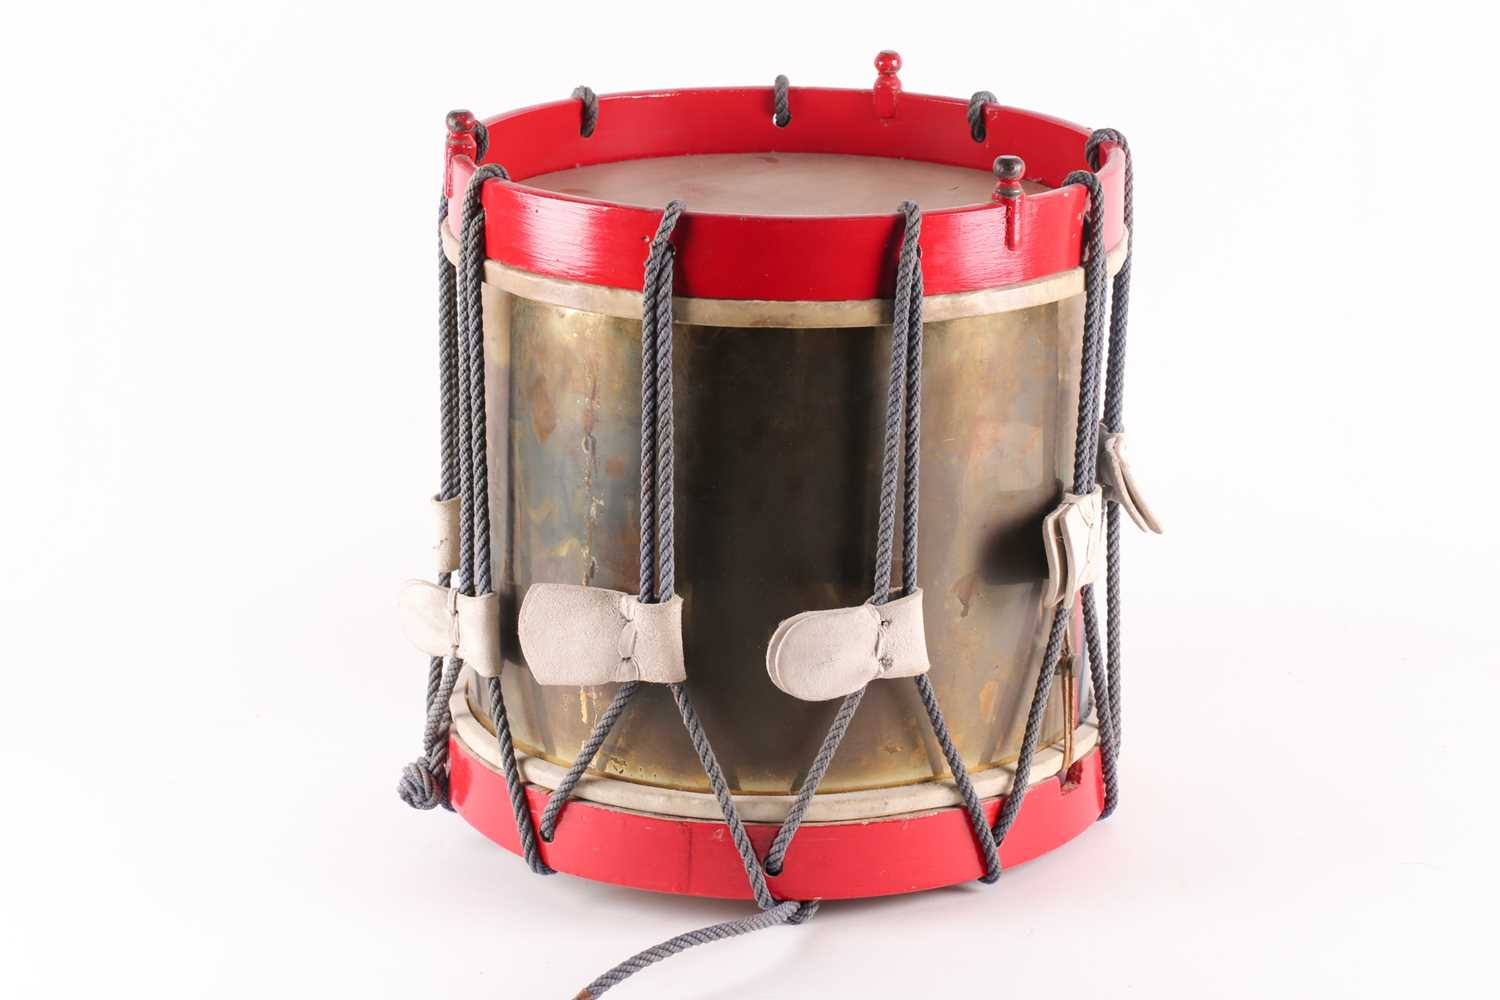 A 20th century regimental (Queen's own regiment of foot?) side drum by Peter Henderson ltd of - Image 2 of 5